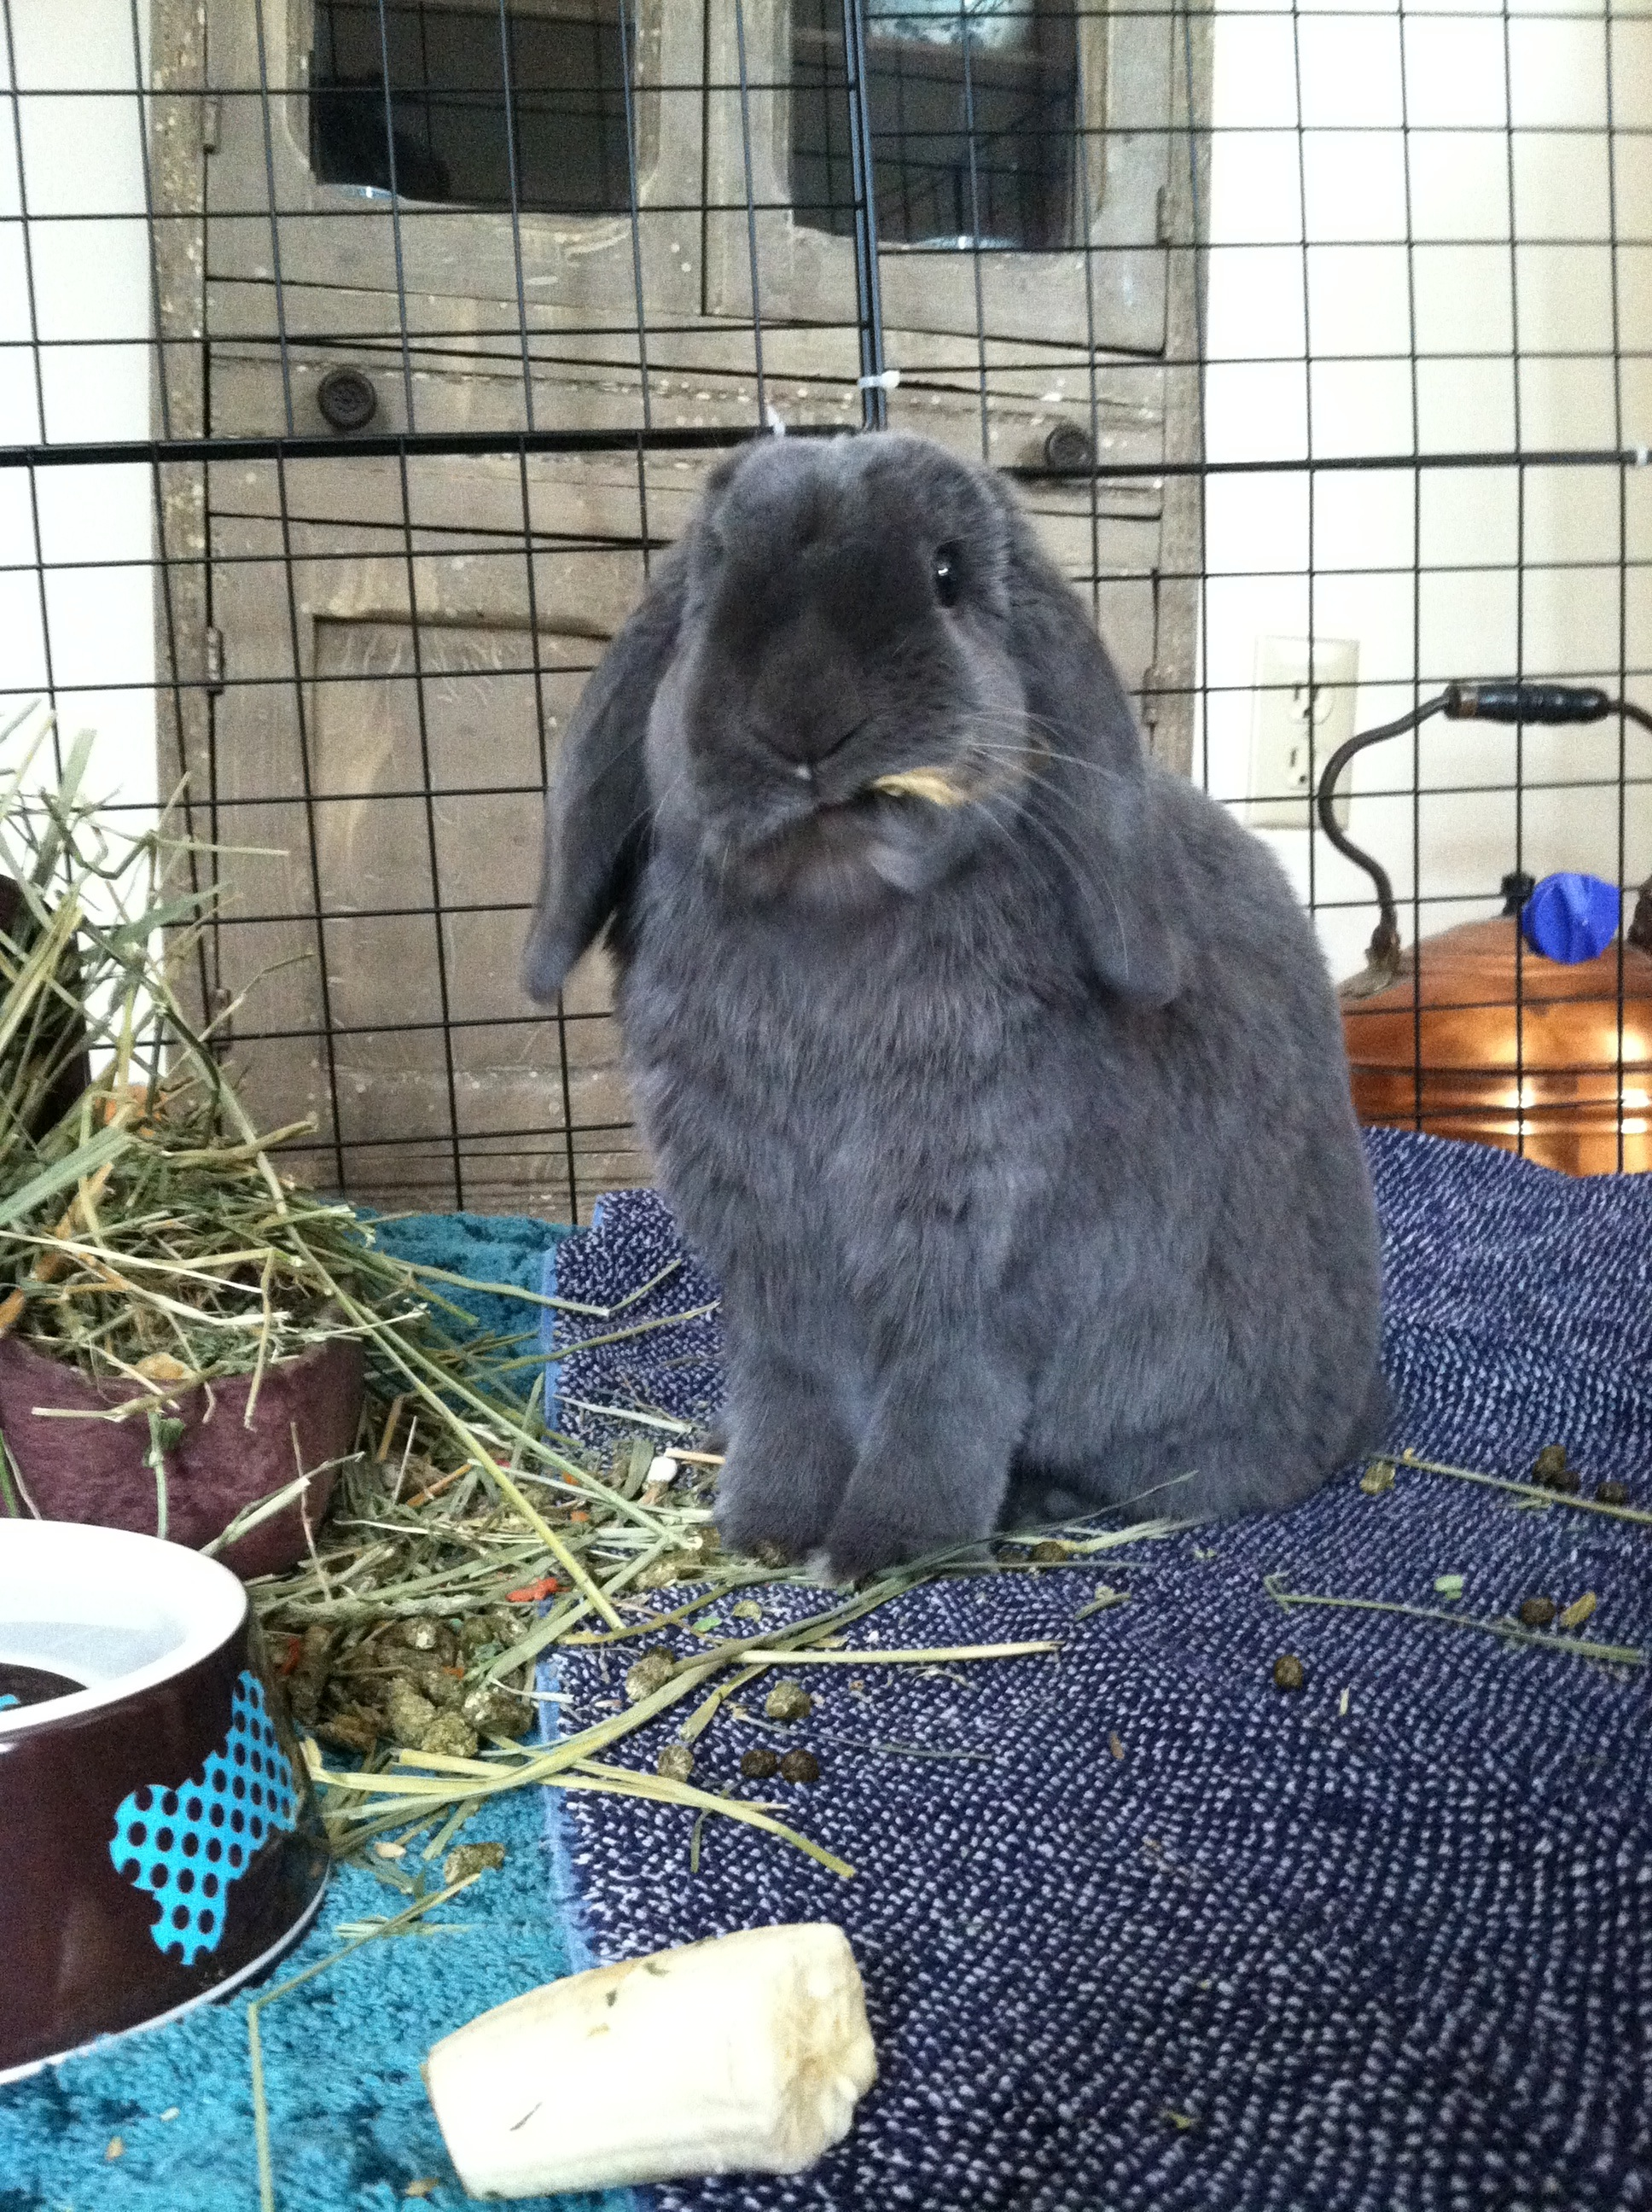 Bunny Sticks Hay in His Mouth for His Cowboy Impression